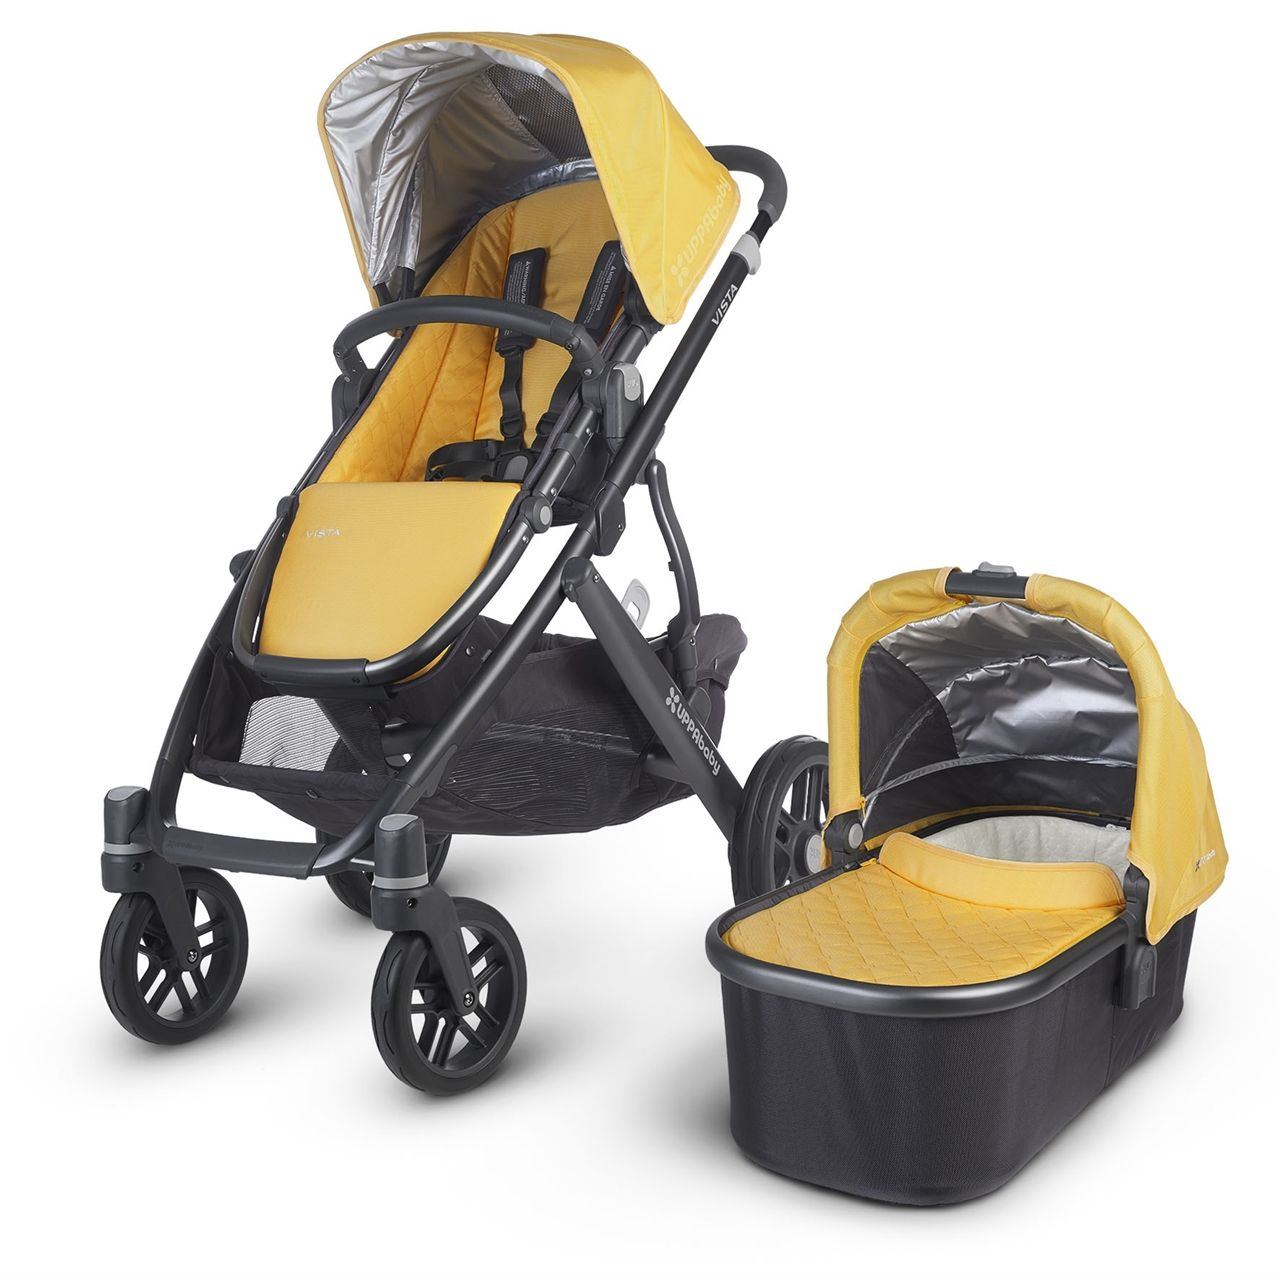 UPPAbaby Vista 2015 with Carrycot Maya. Building on the